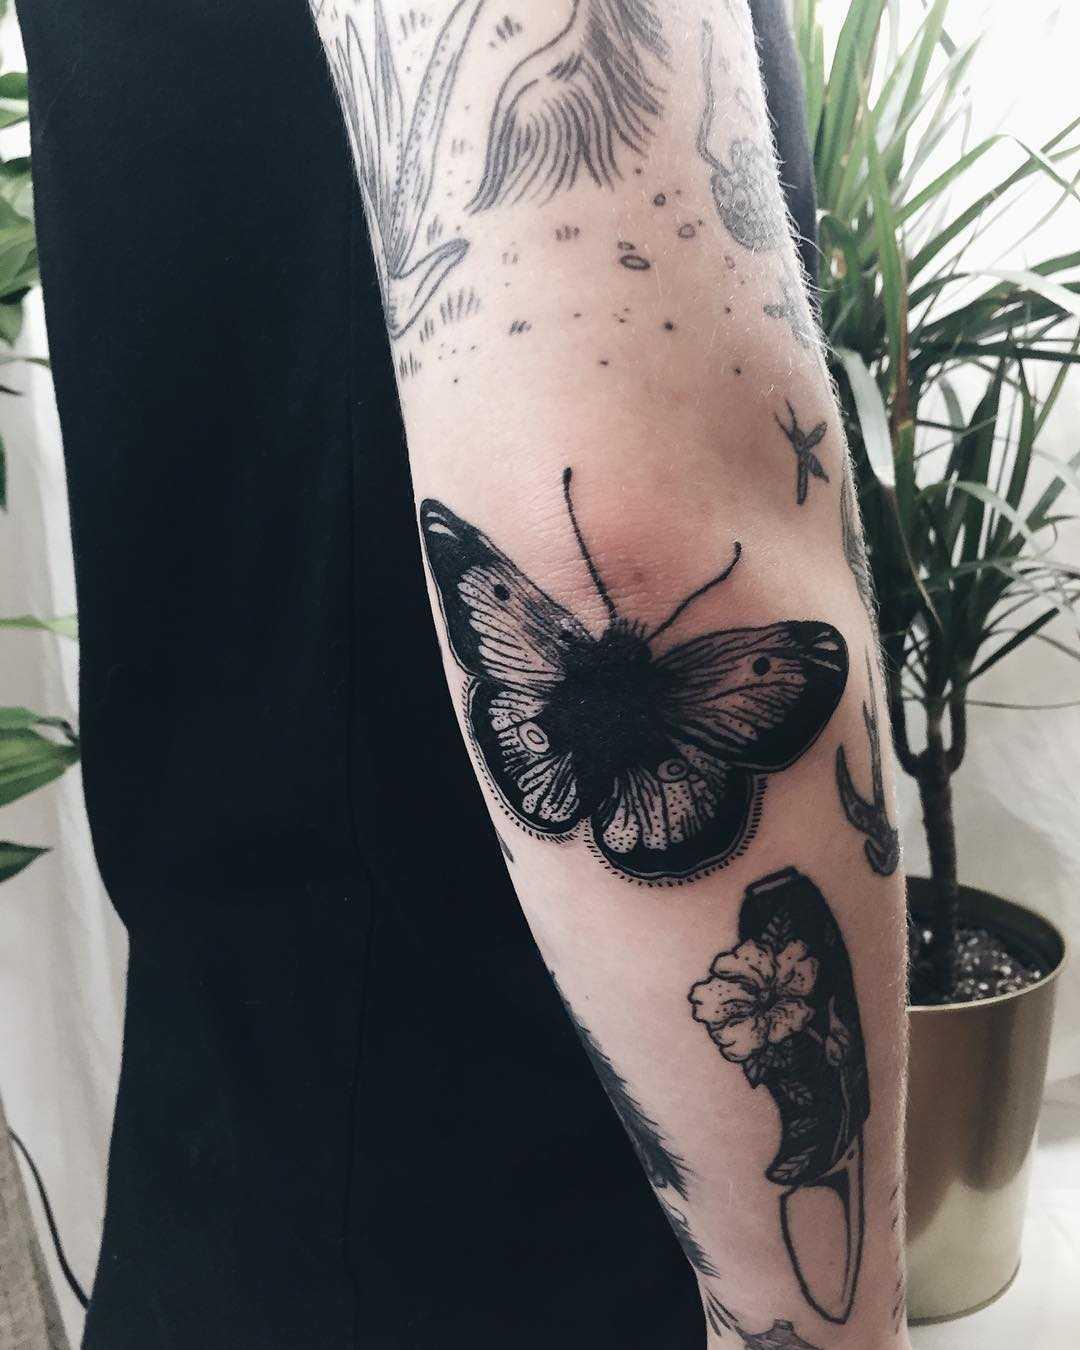 Little butterfly tattoo on the elbow